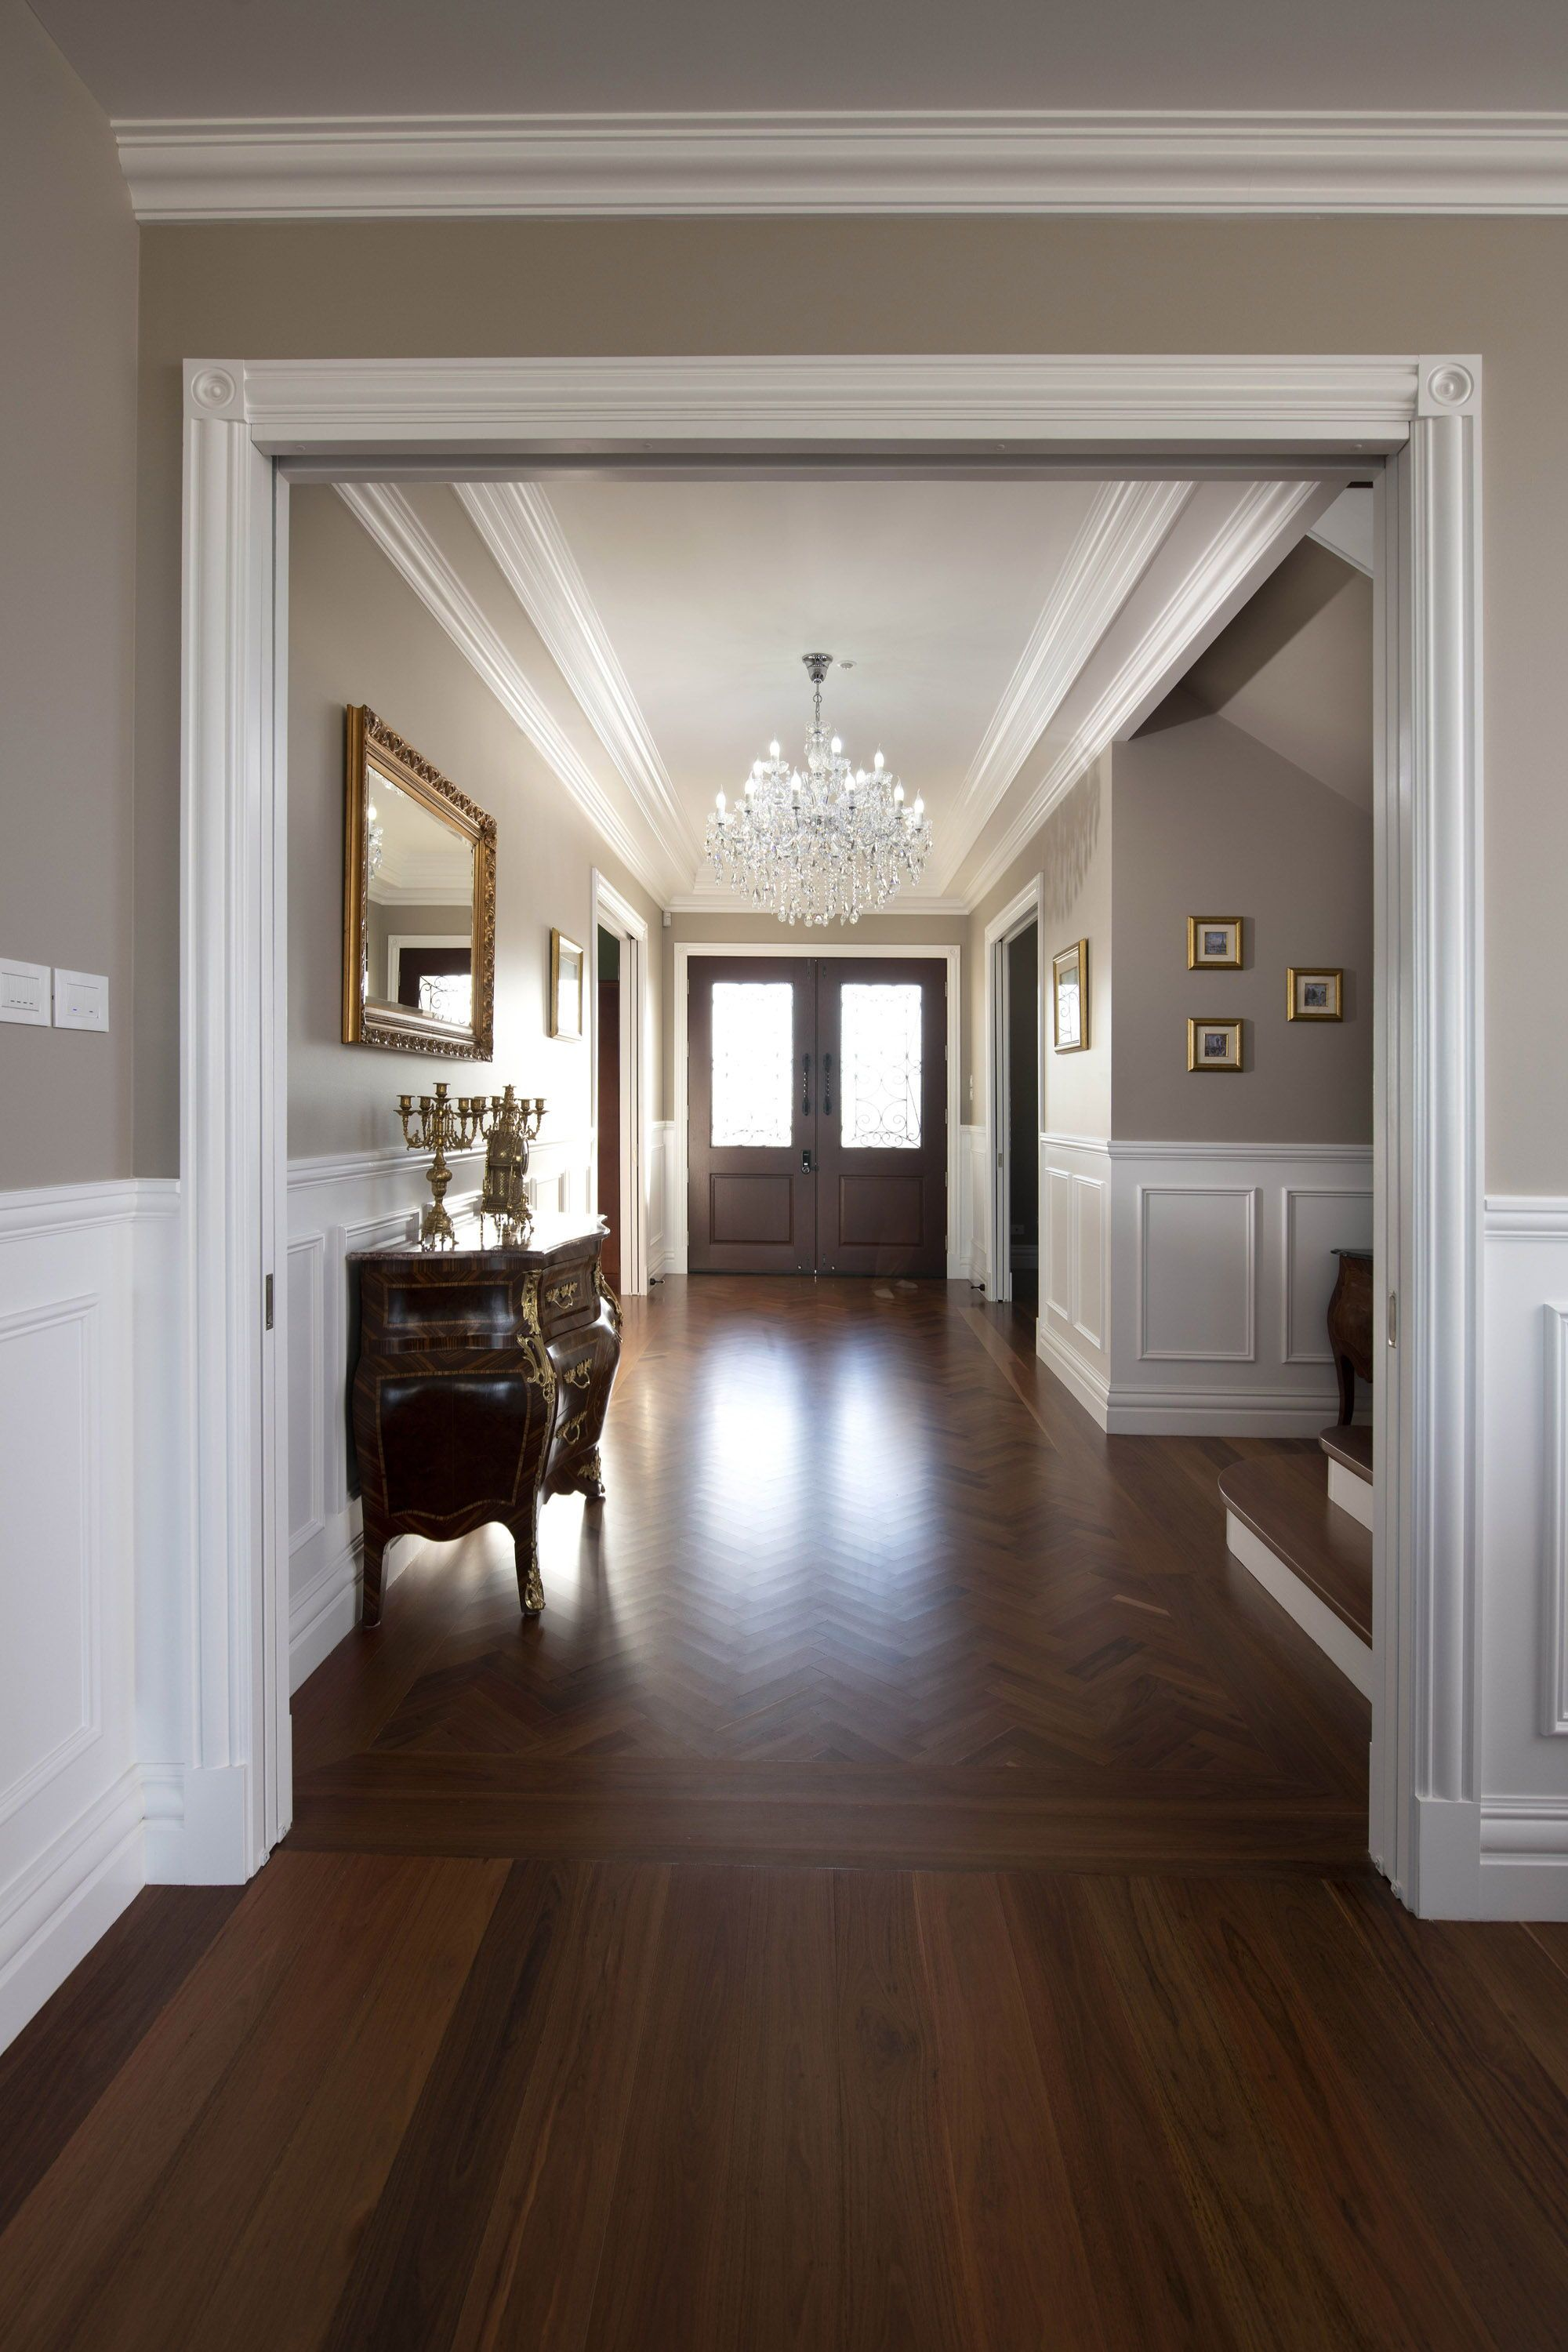 This Stunning French Provincial Style Home By Luxe Home Designs By Mimi Set High On A Hill In The Picturesque Hunte Foyer Design House Design Home Room Design